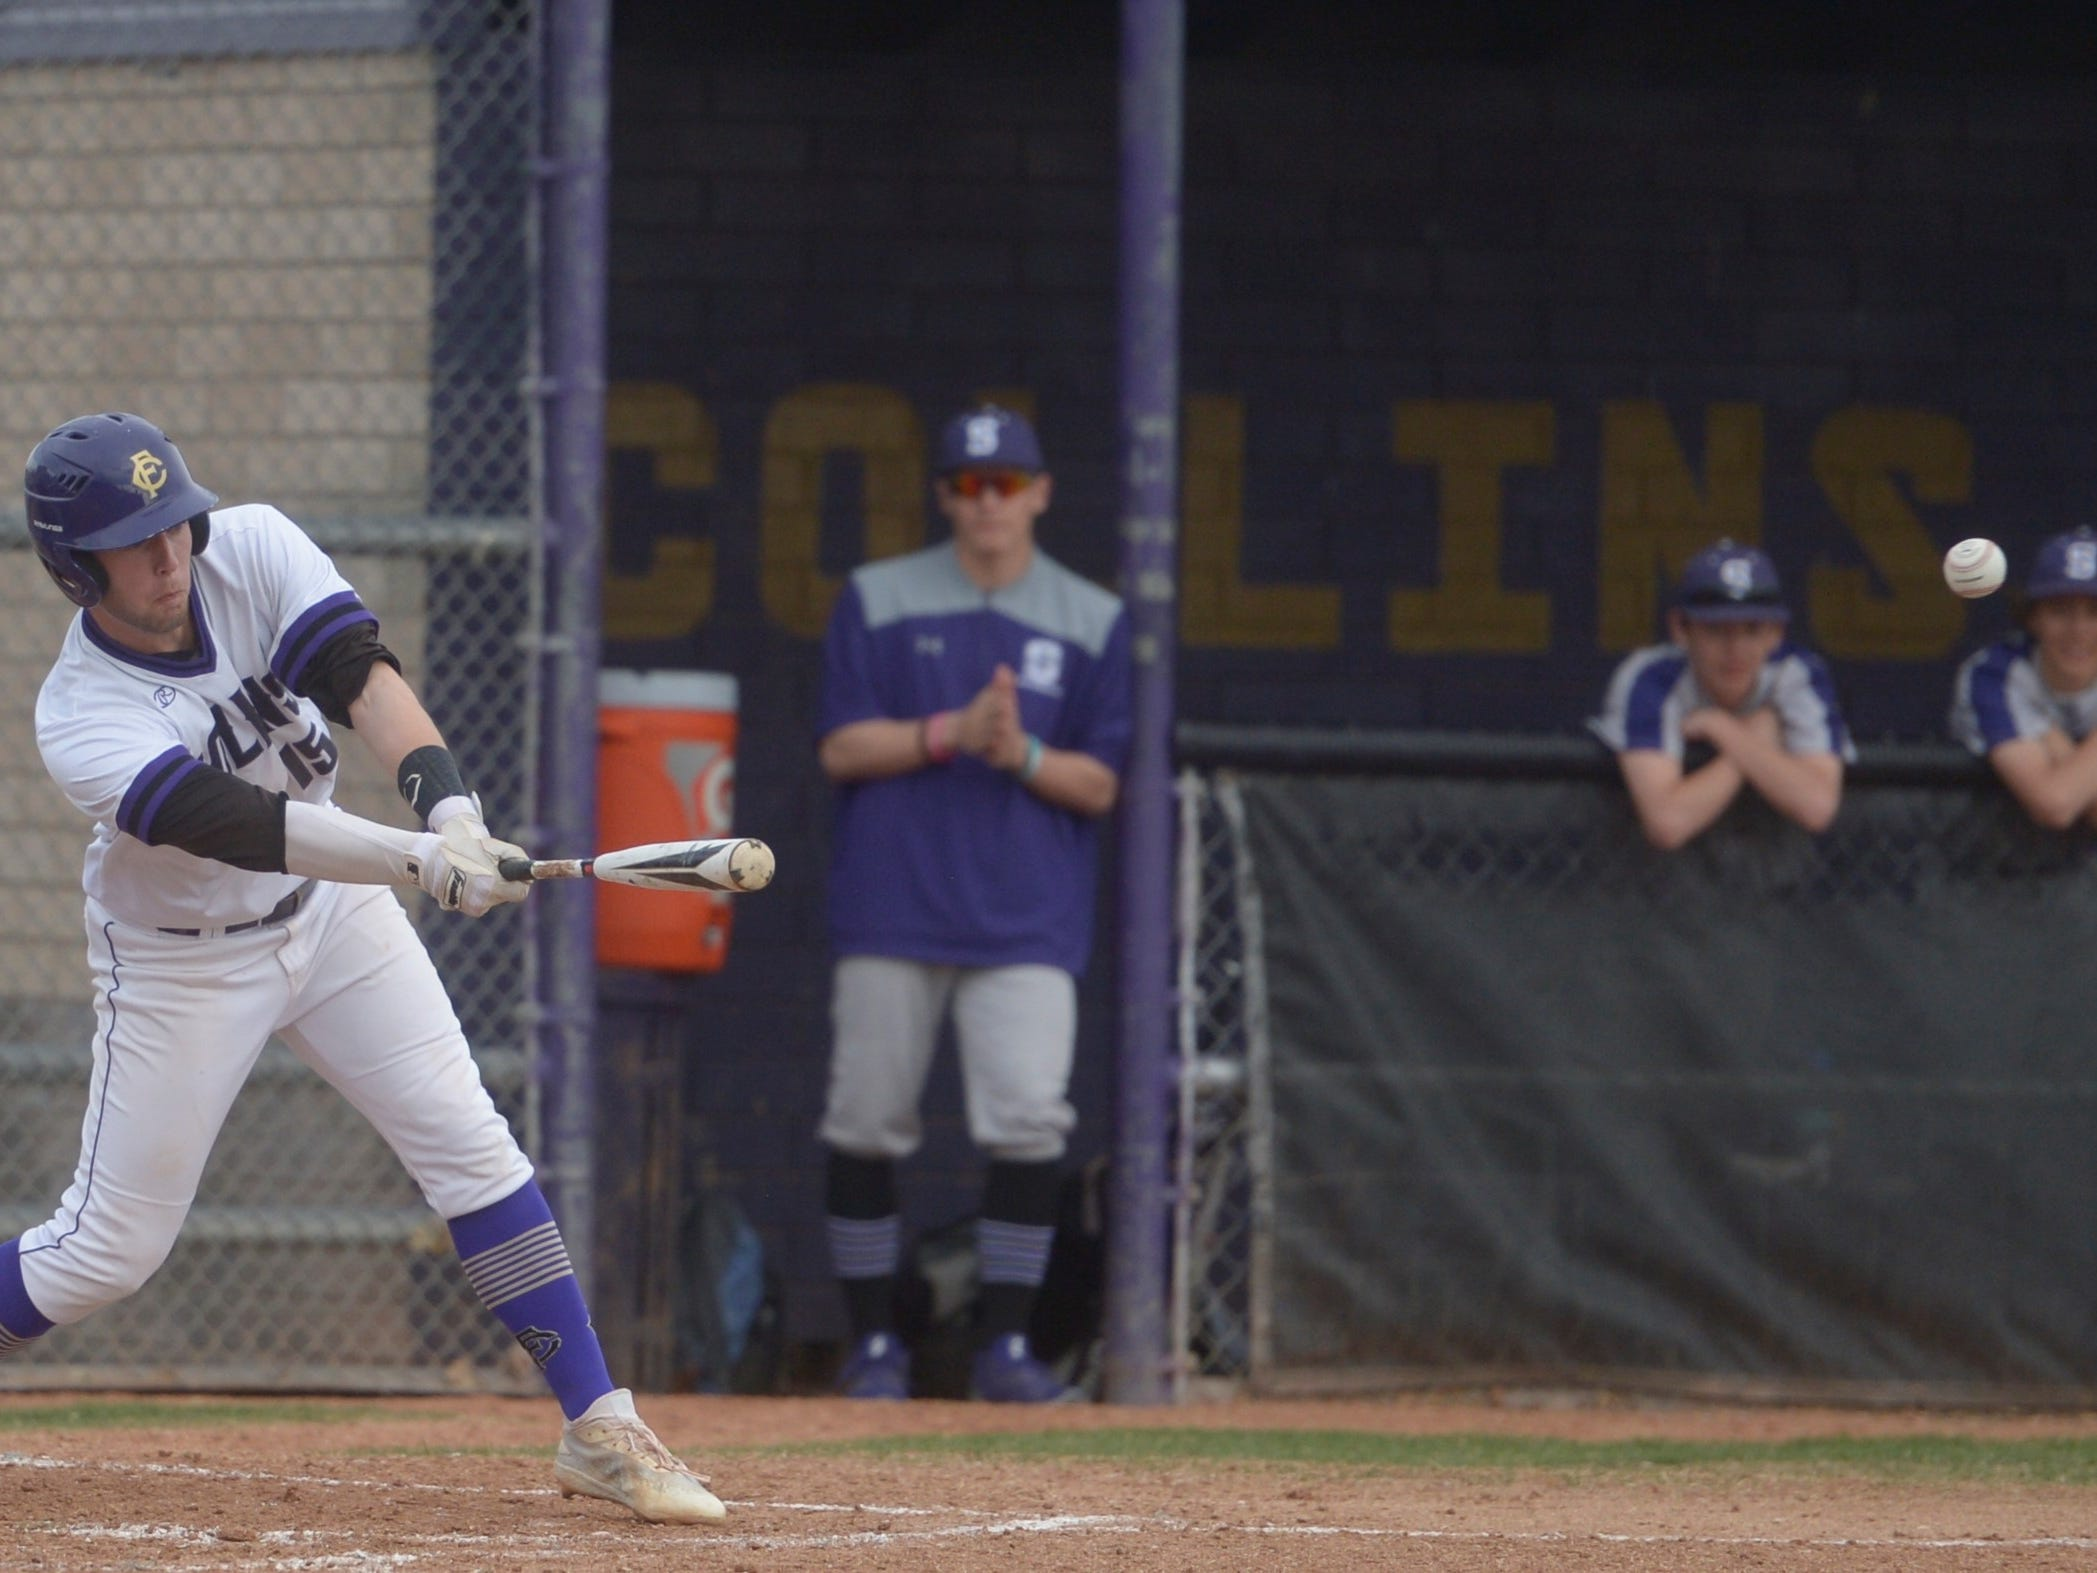 Fort Collins High School second baseman Caleb Brlecic with an RBI hit during a game against Denver South on Monday, April 8, 2019. The Lambkins won 13-3 to move to 10-0 on the season.